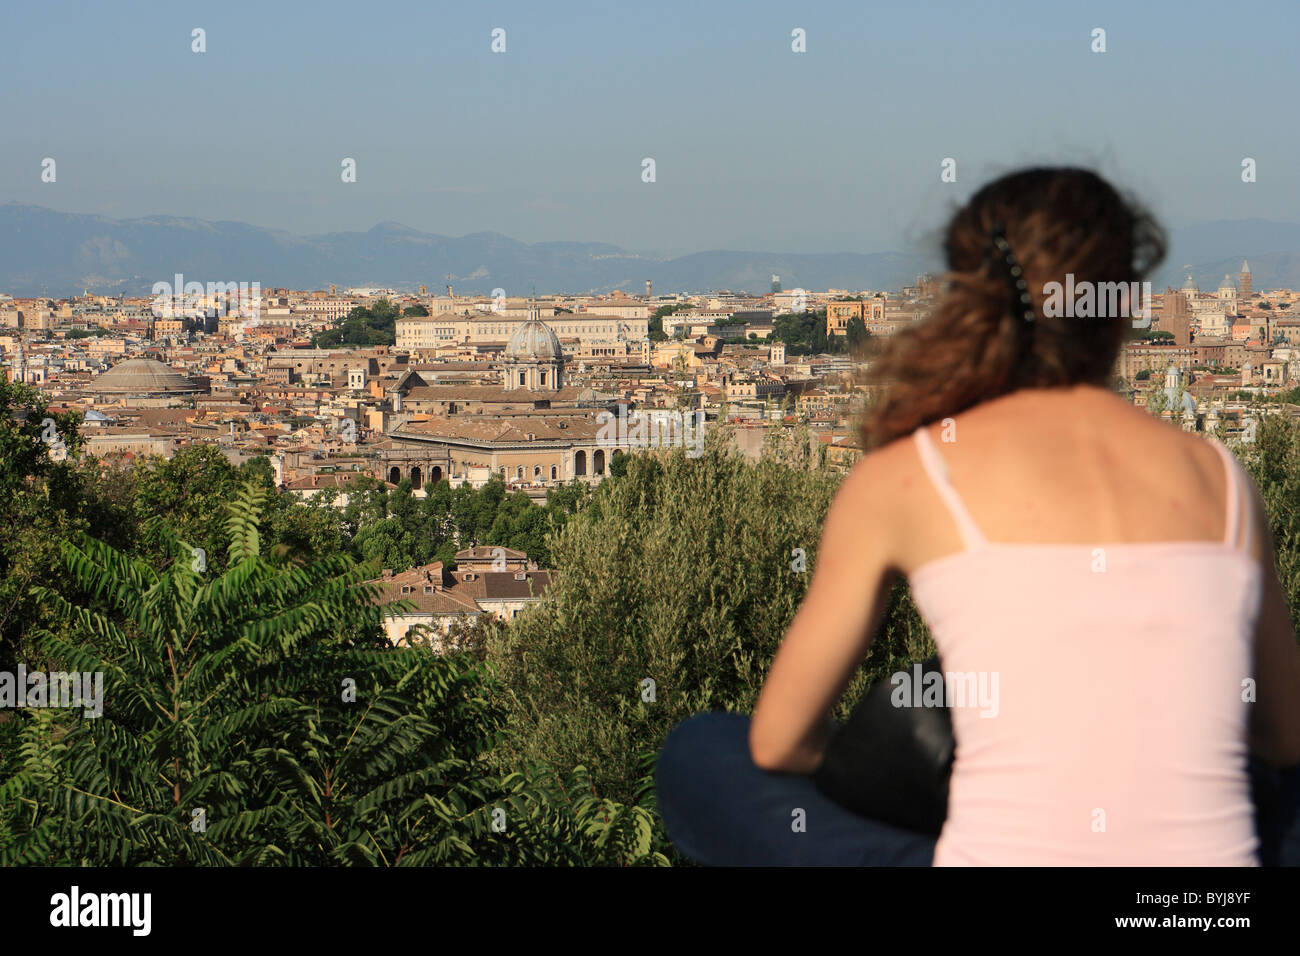 A woman enjoying the view from the Gianicolo Hill, Rome, Italy Stock Photo